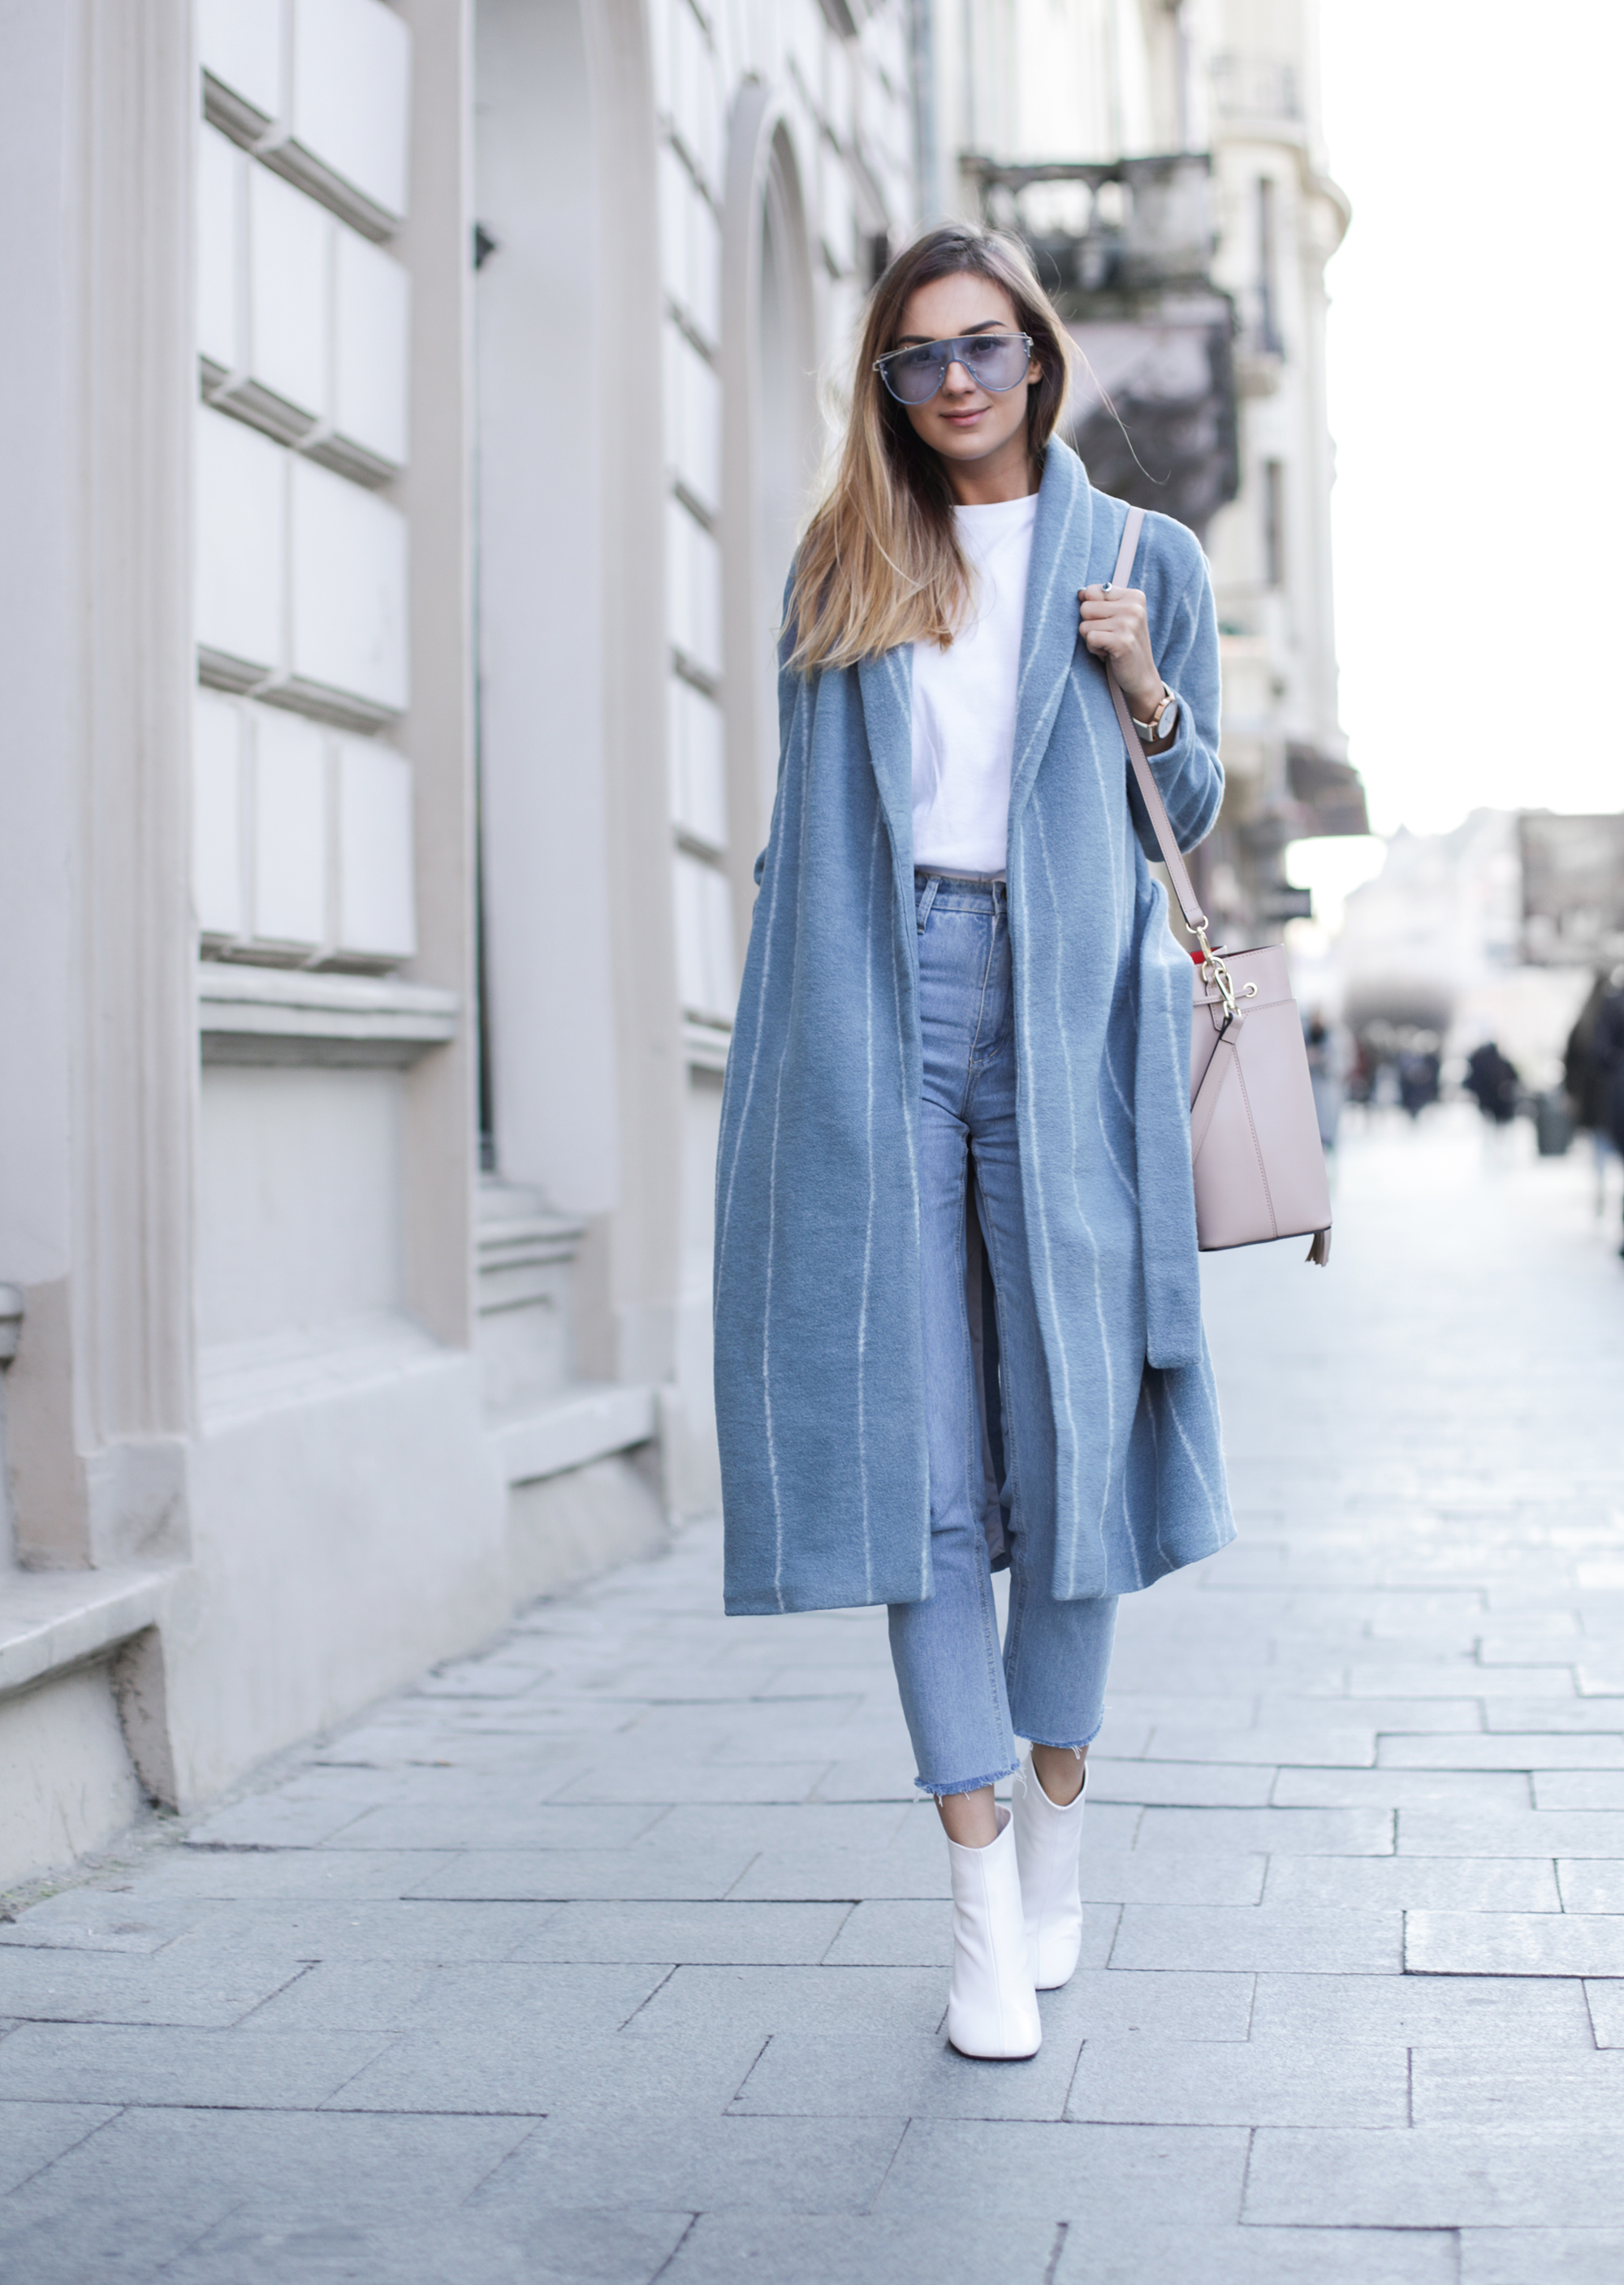 pastel-robe-coat-white-boots-street-style-outfit